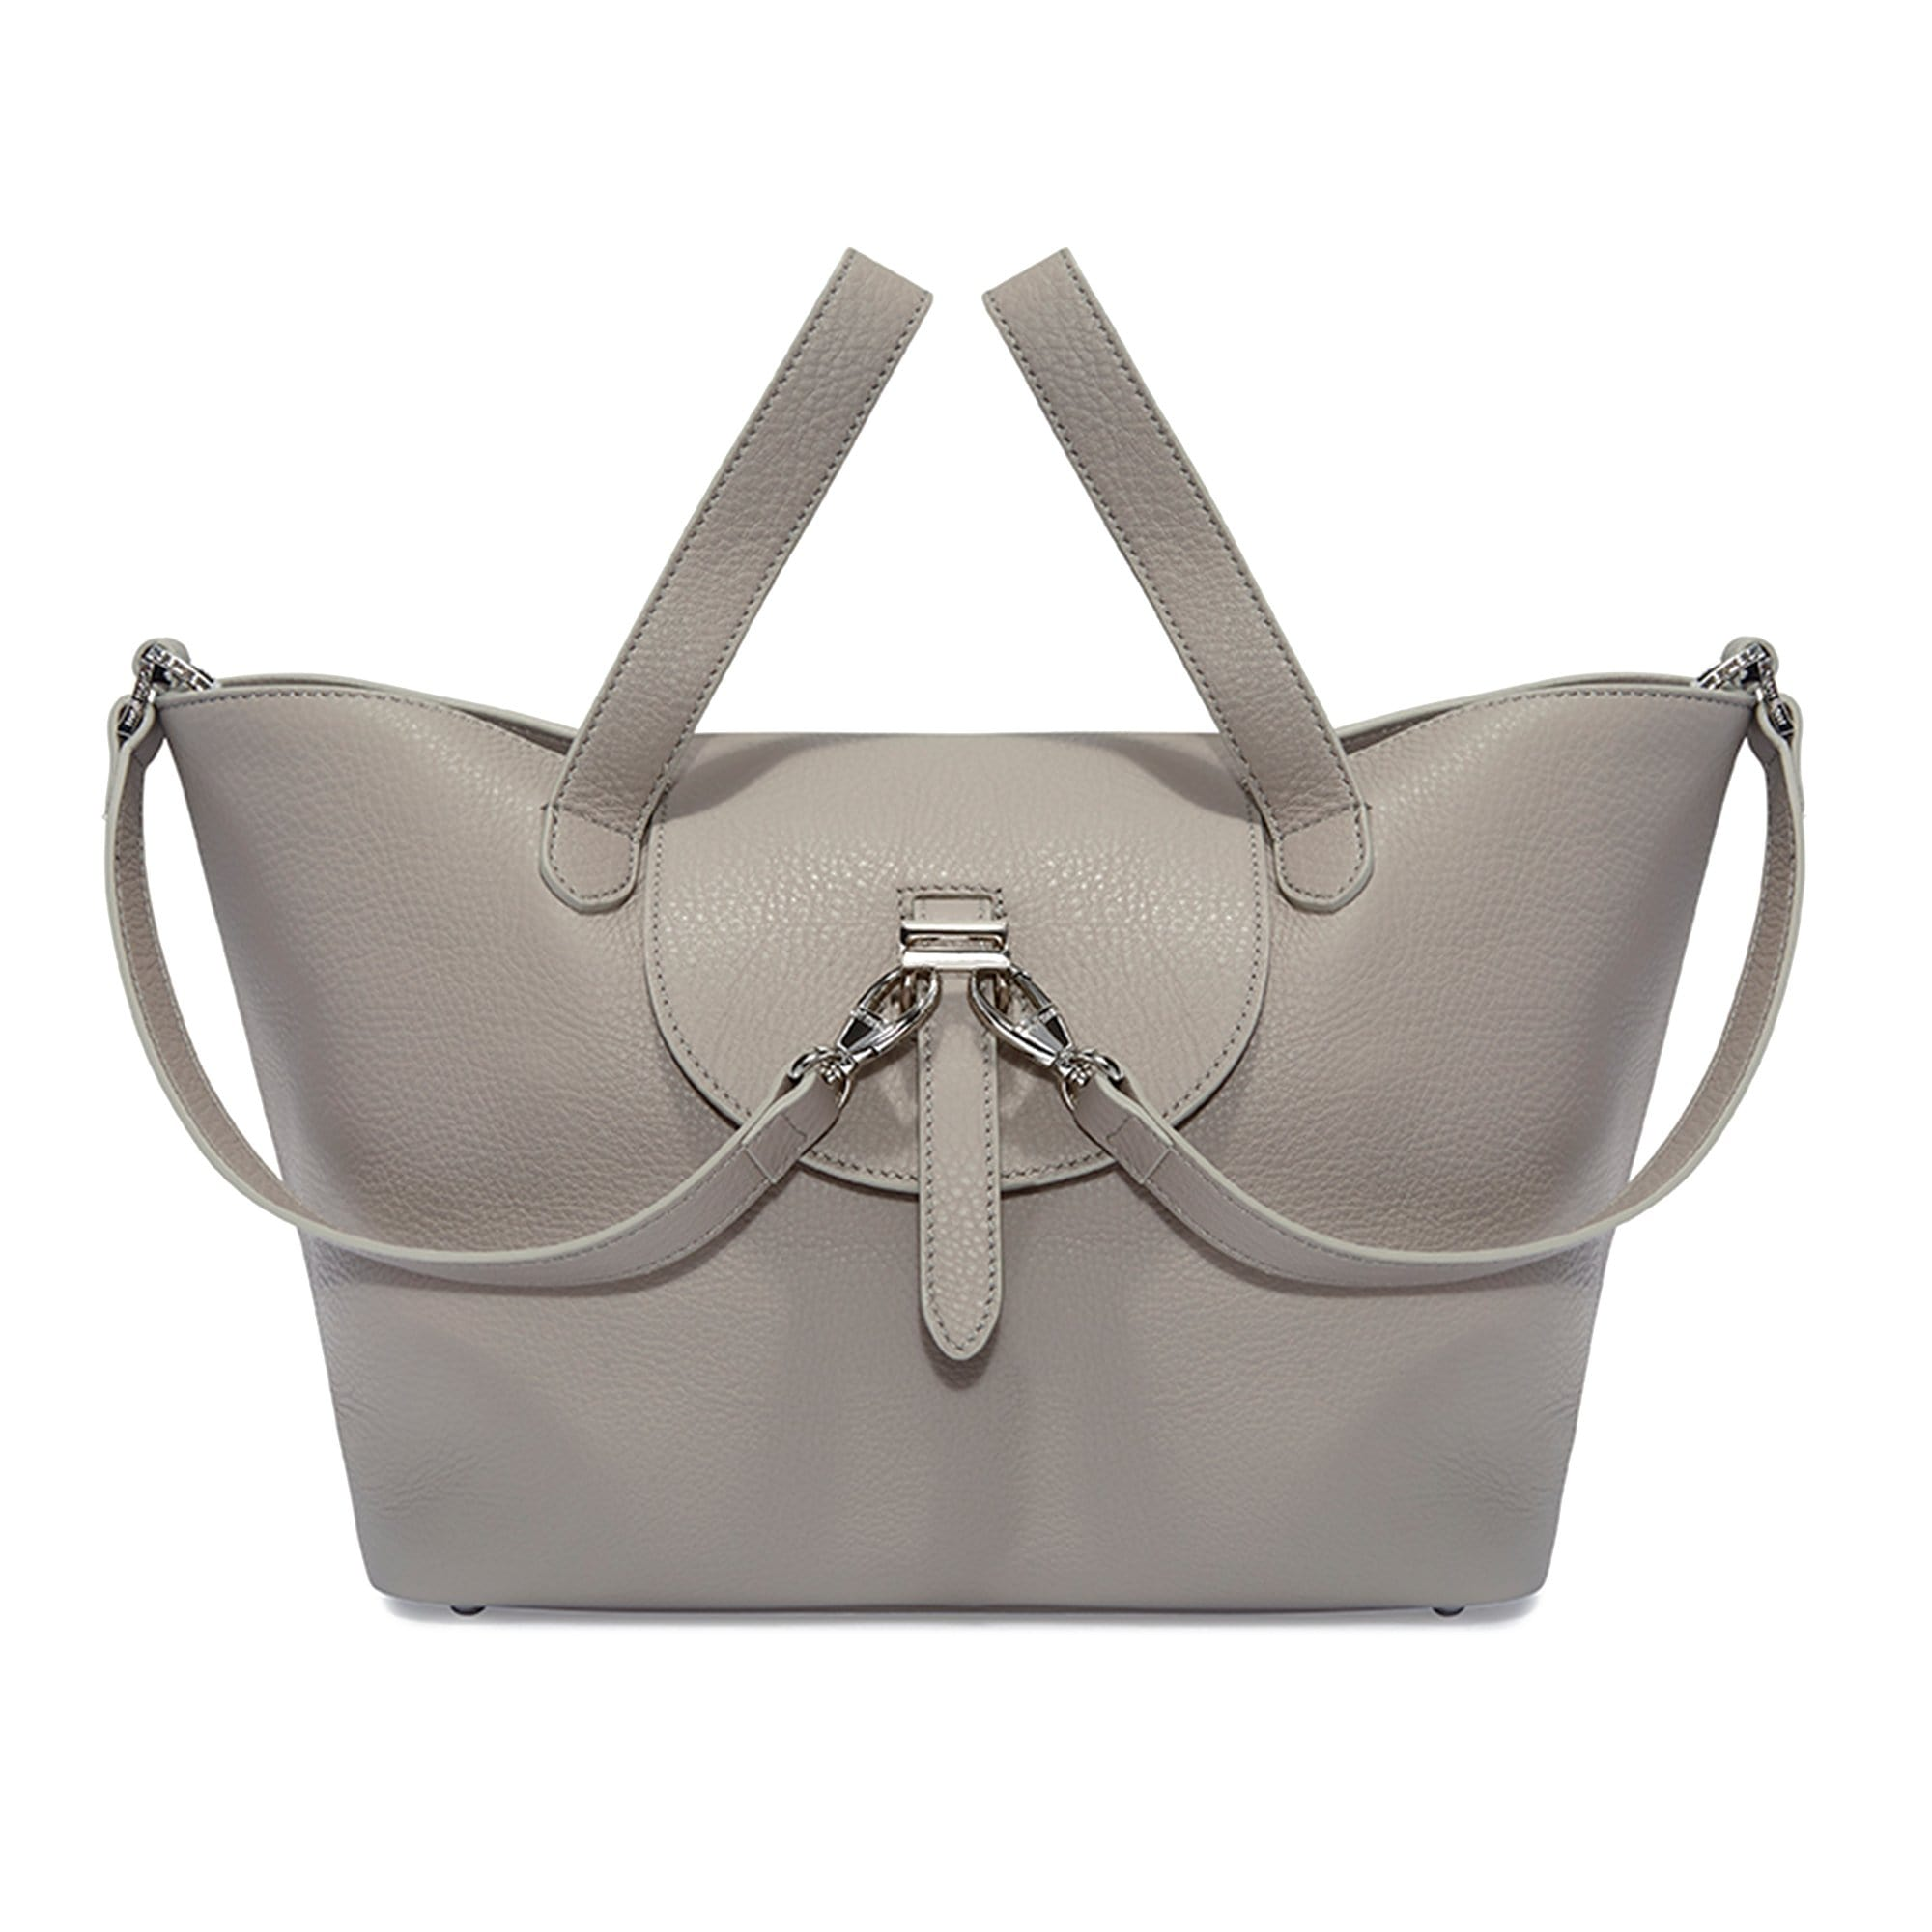 240035137342 Thela Medium Tote Bag Taupe